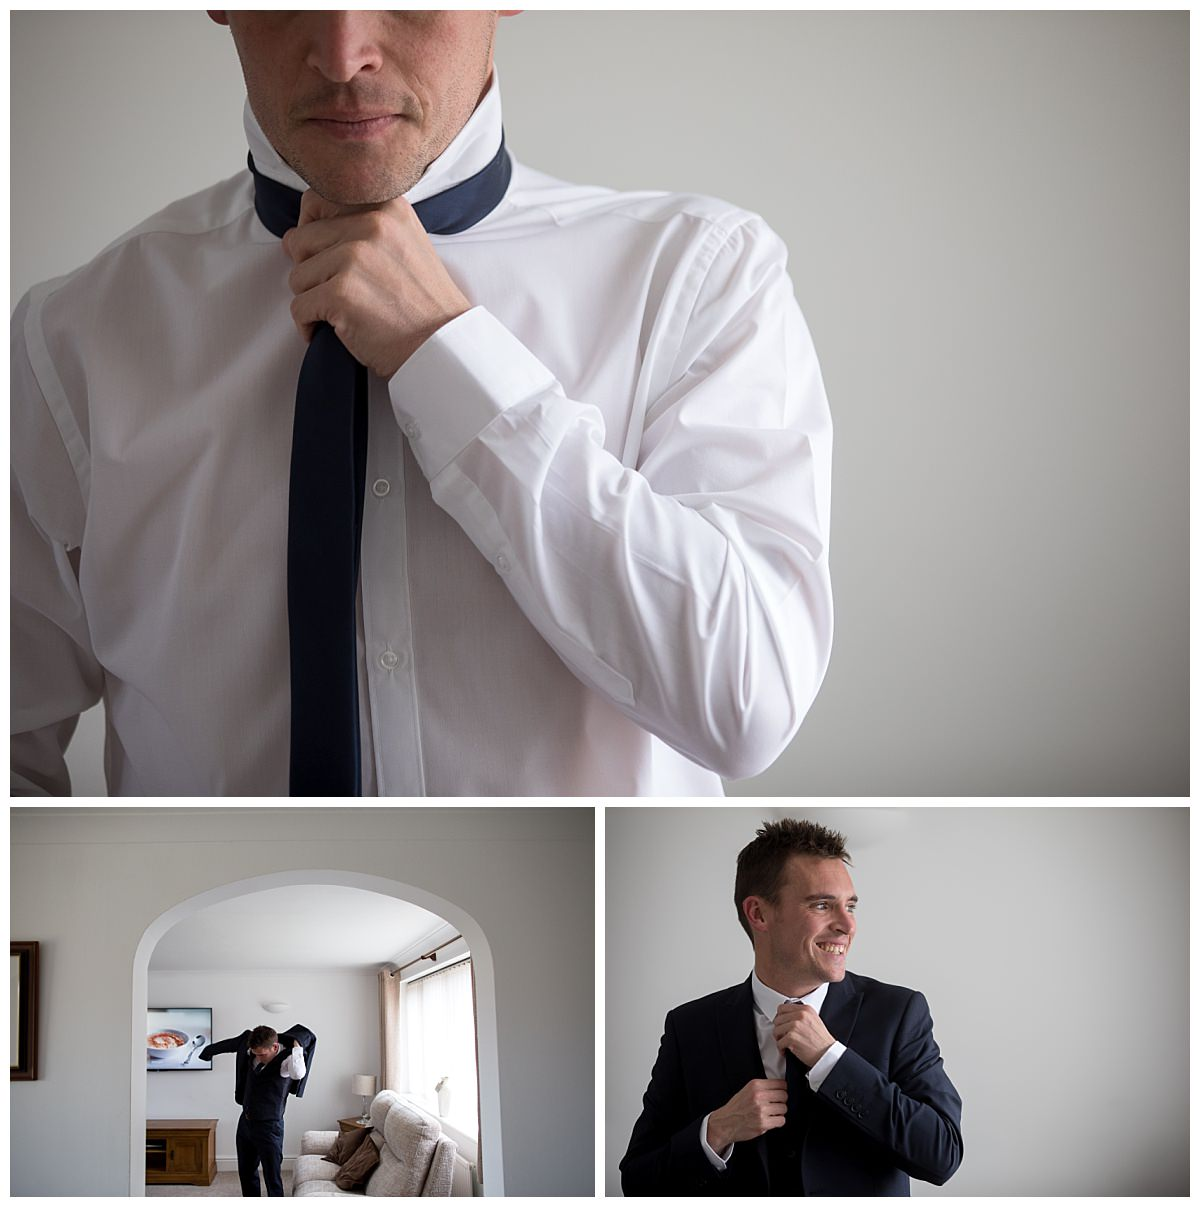 Groom putting on his tie and jacket